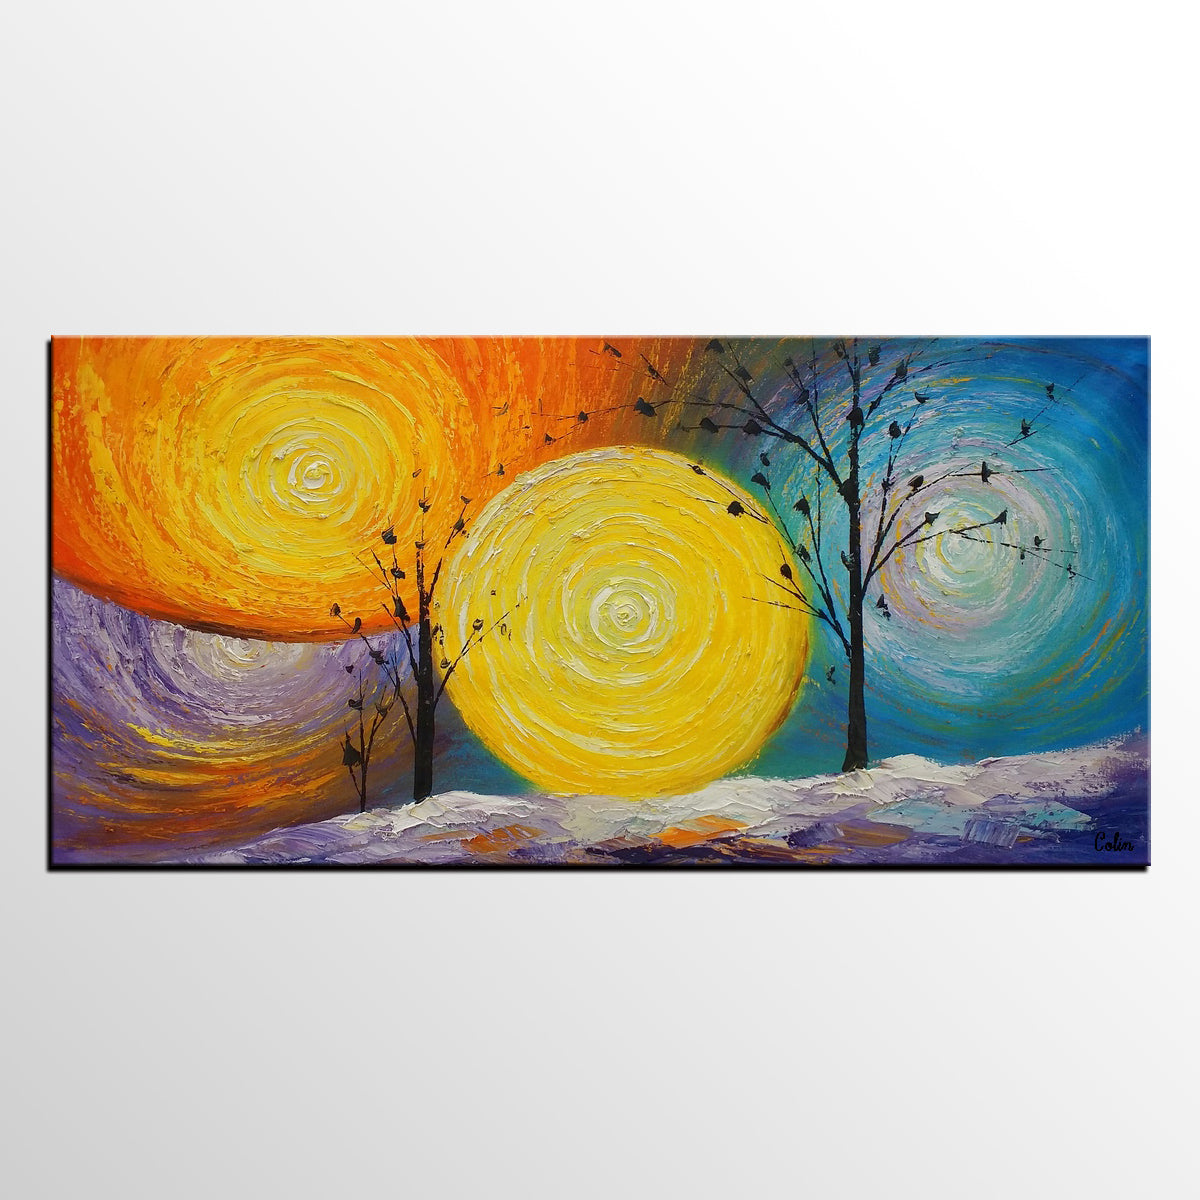 Impasto Painting, Abstract Painting, Tree of Life Painting, Kitchen Wall Art, Original Painting, Heavy Texture Art, Original Art, Canvas Painting